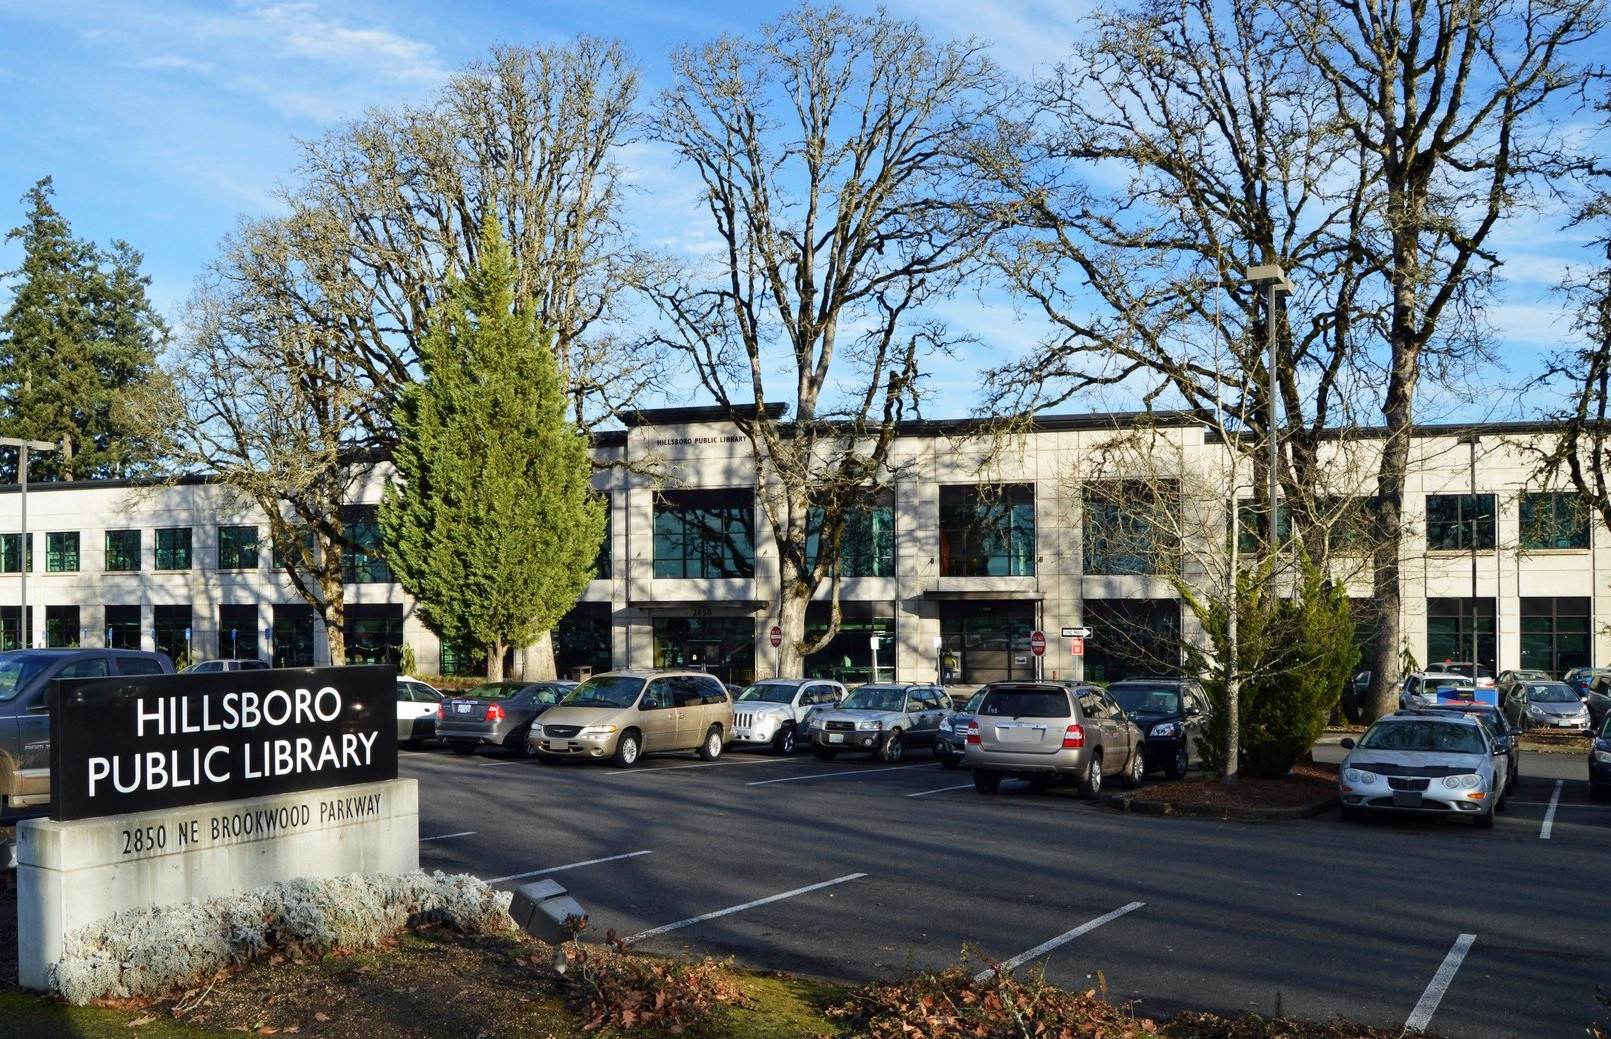 34-hillsboro-oregon-public-library-the-kelly-group-real-estate